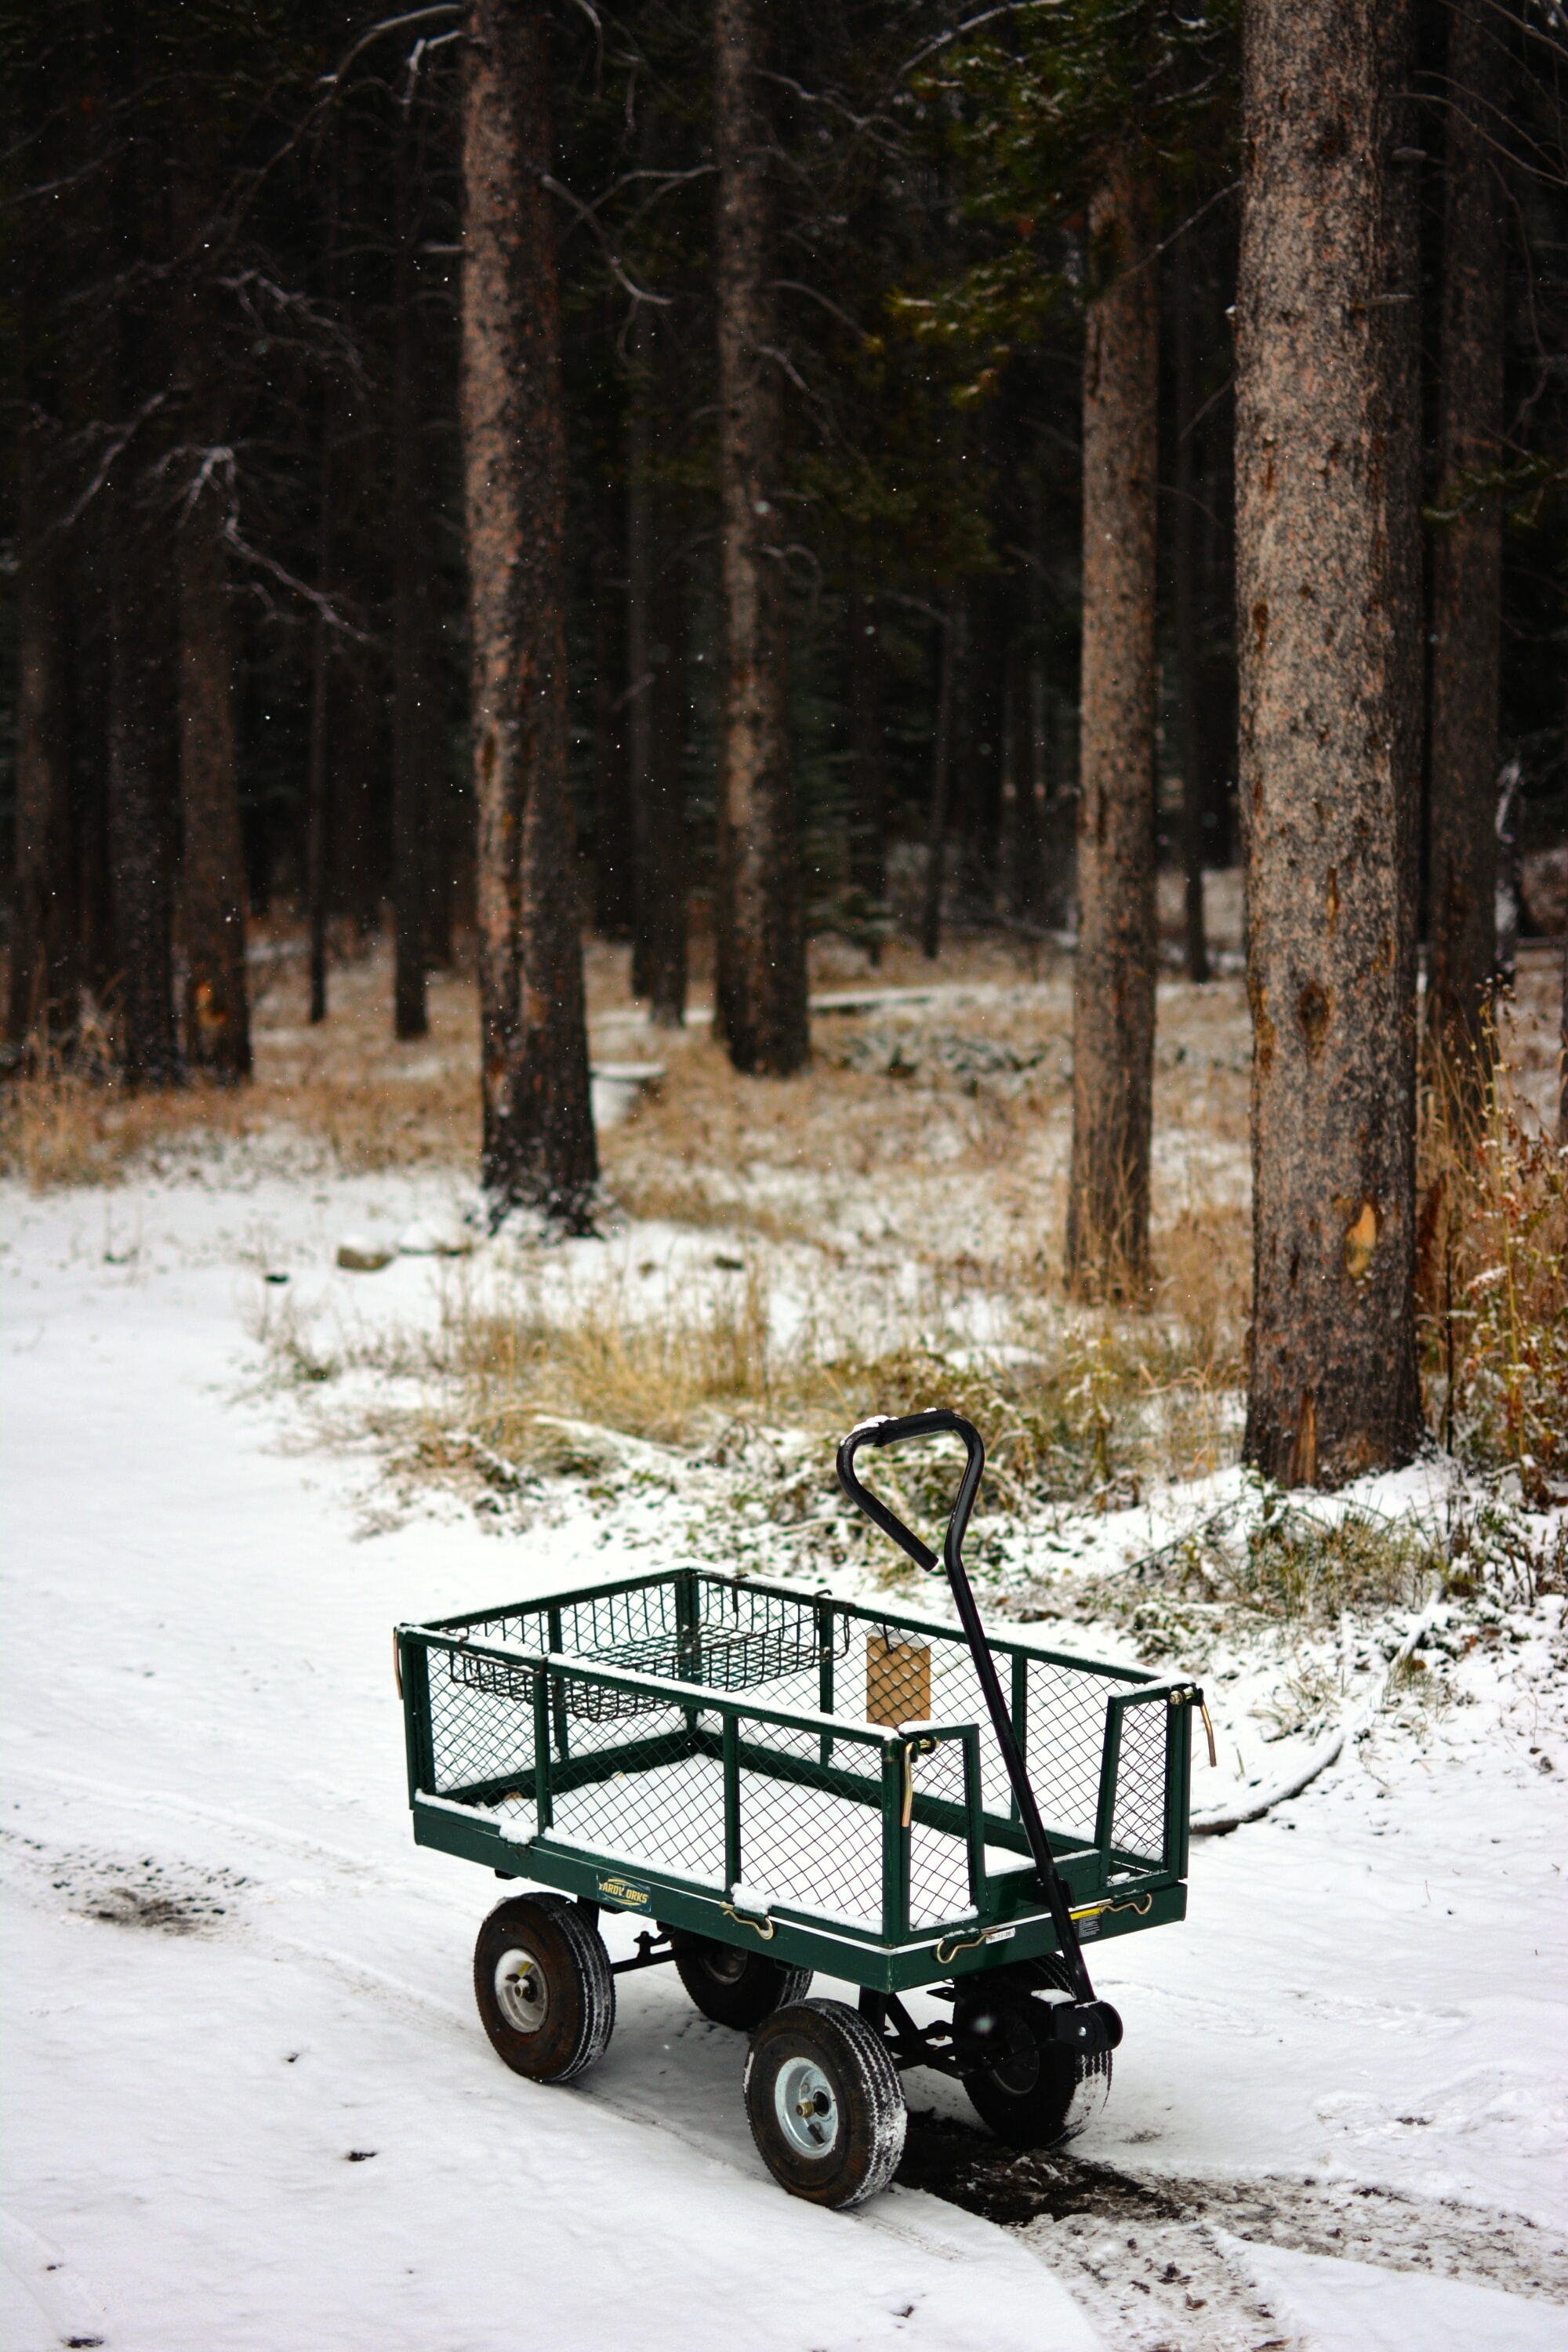 A small empty handcart on a snowy path at the edge of the forest